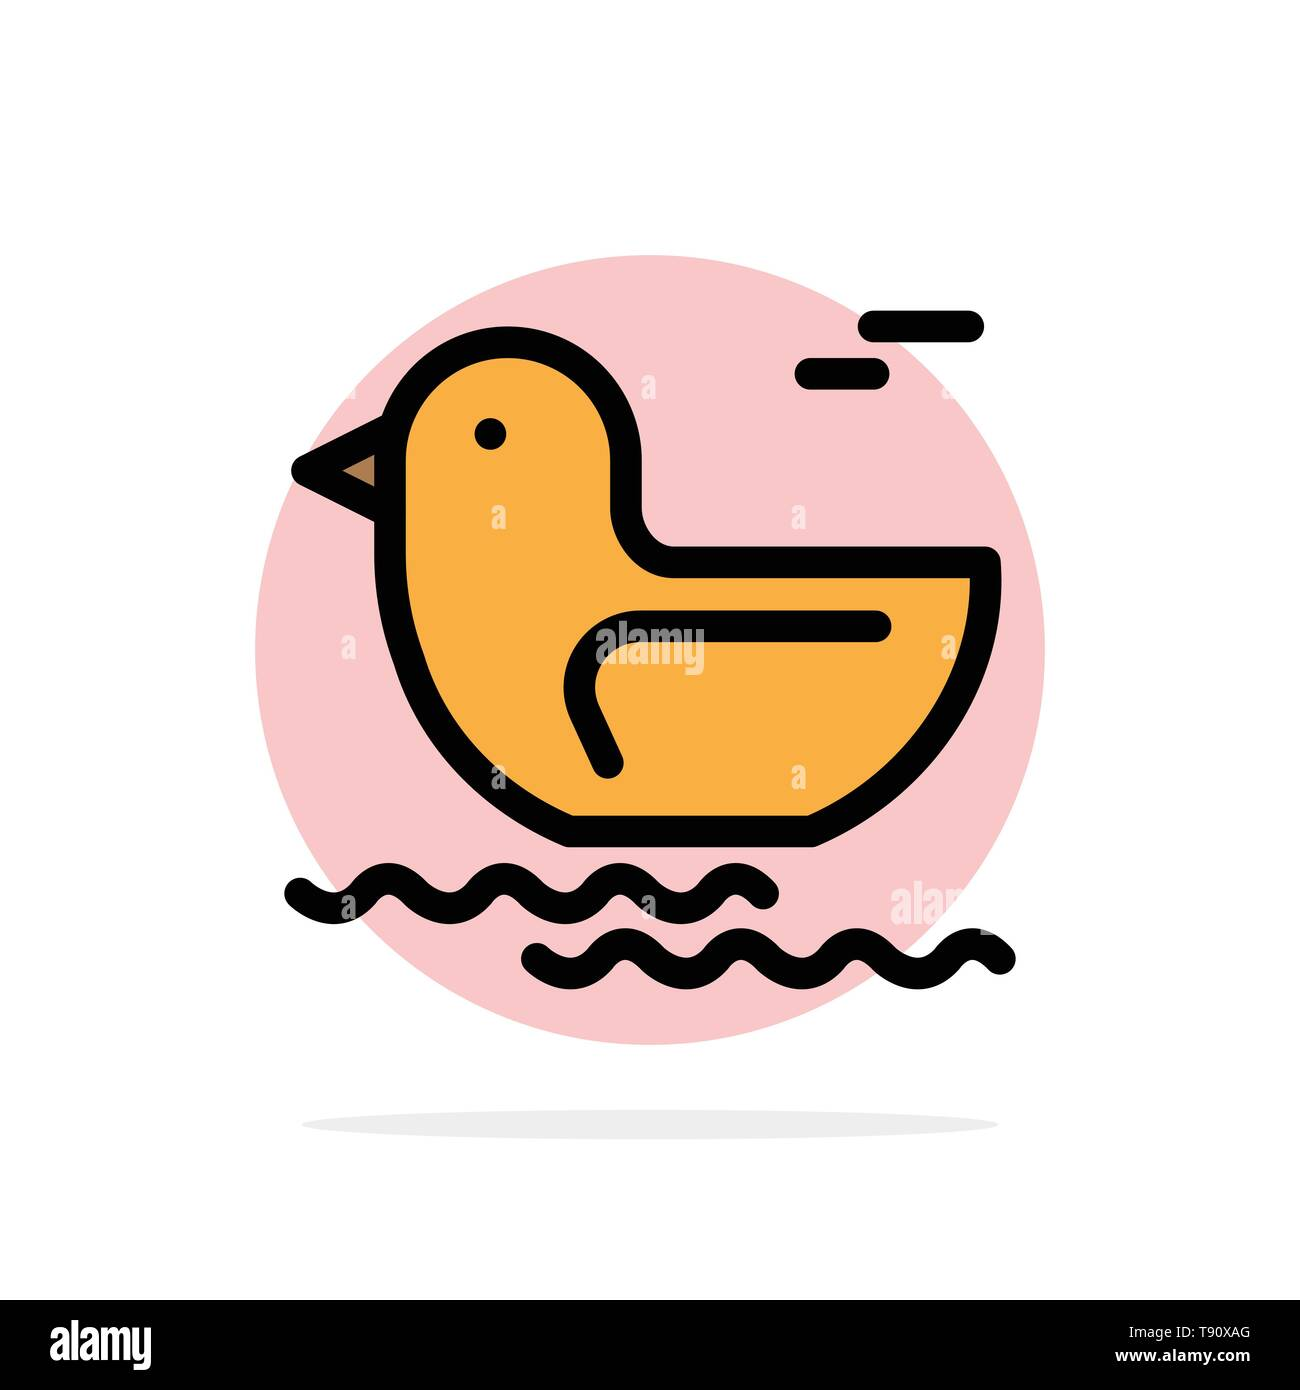 Duck, River, Canada Abstract Circle Background Flat color Icon - Stock Image